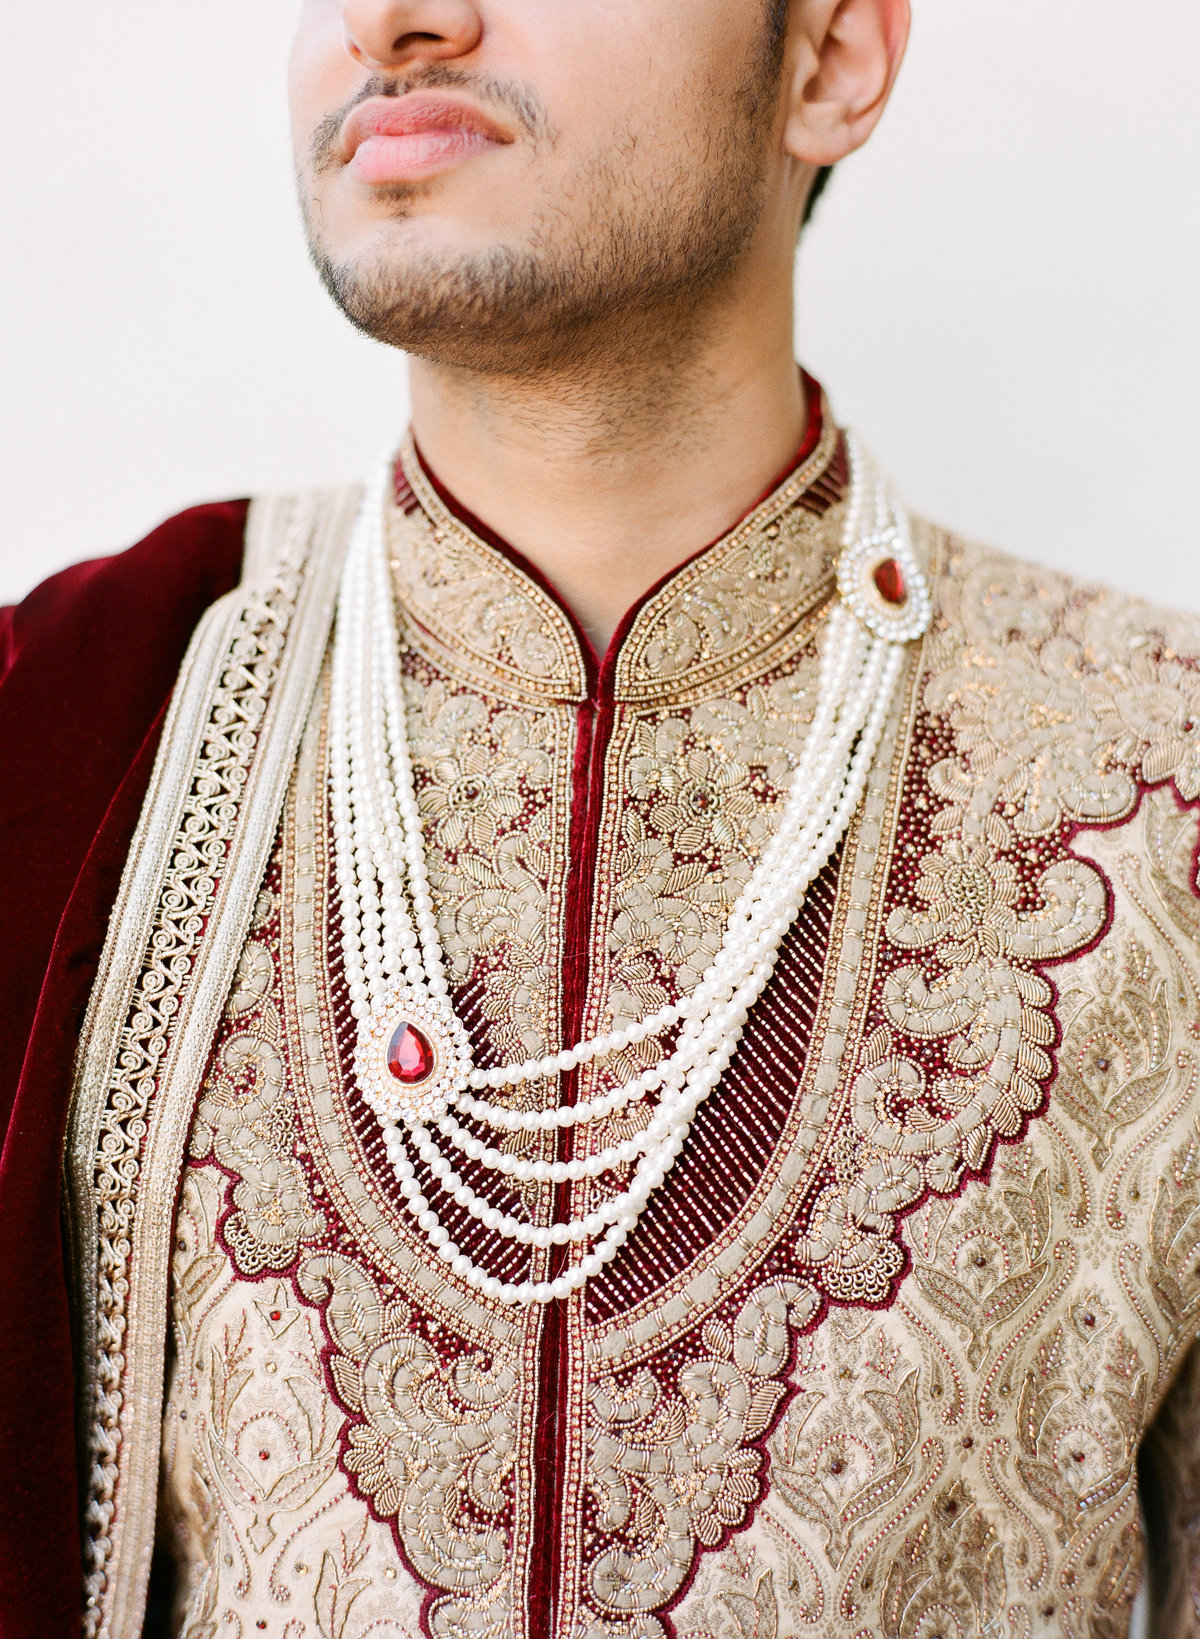 sasha-aneesh-wedding-bride-groom-indian-70